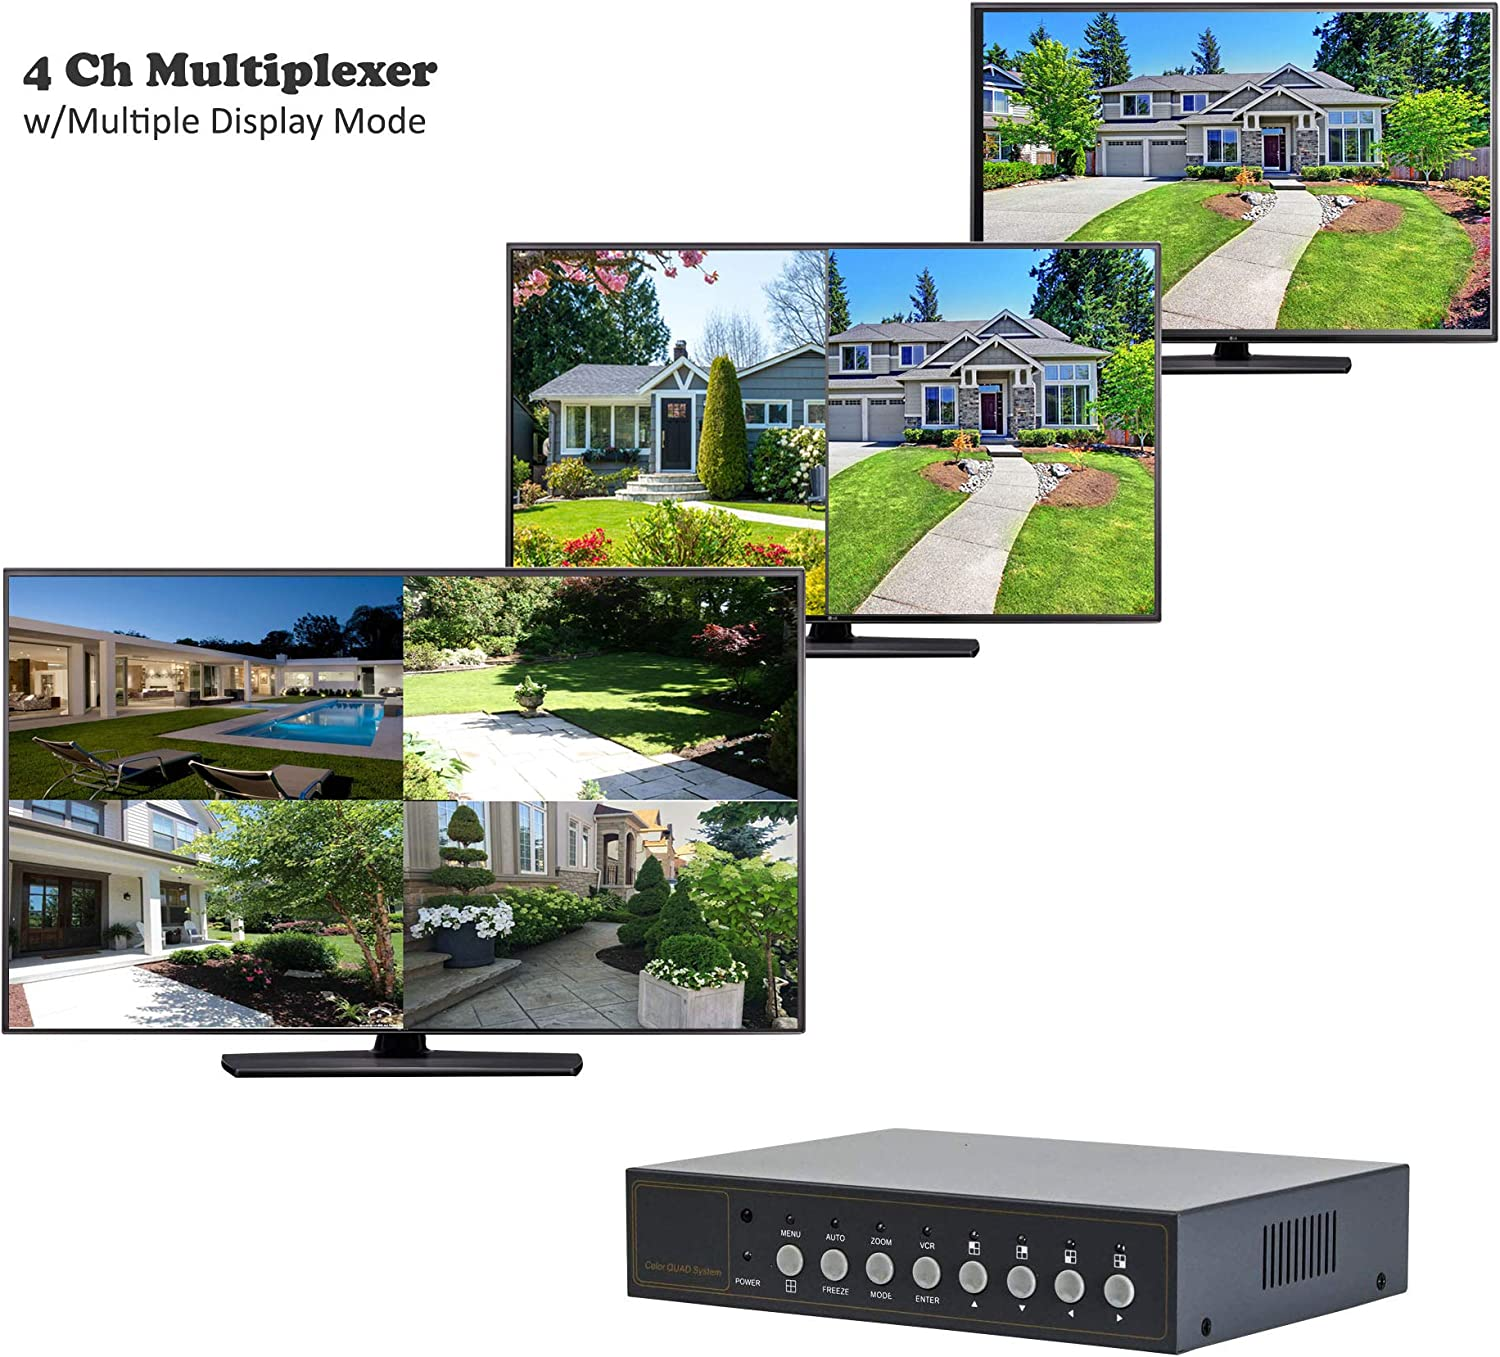 Video Quad Multiplexer 4CH 2 BNC Output with Remote Control and Free 1Amp Power Adapter